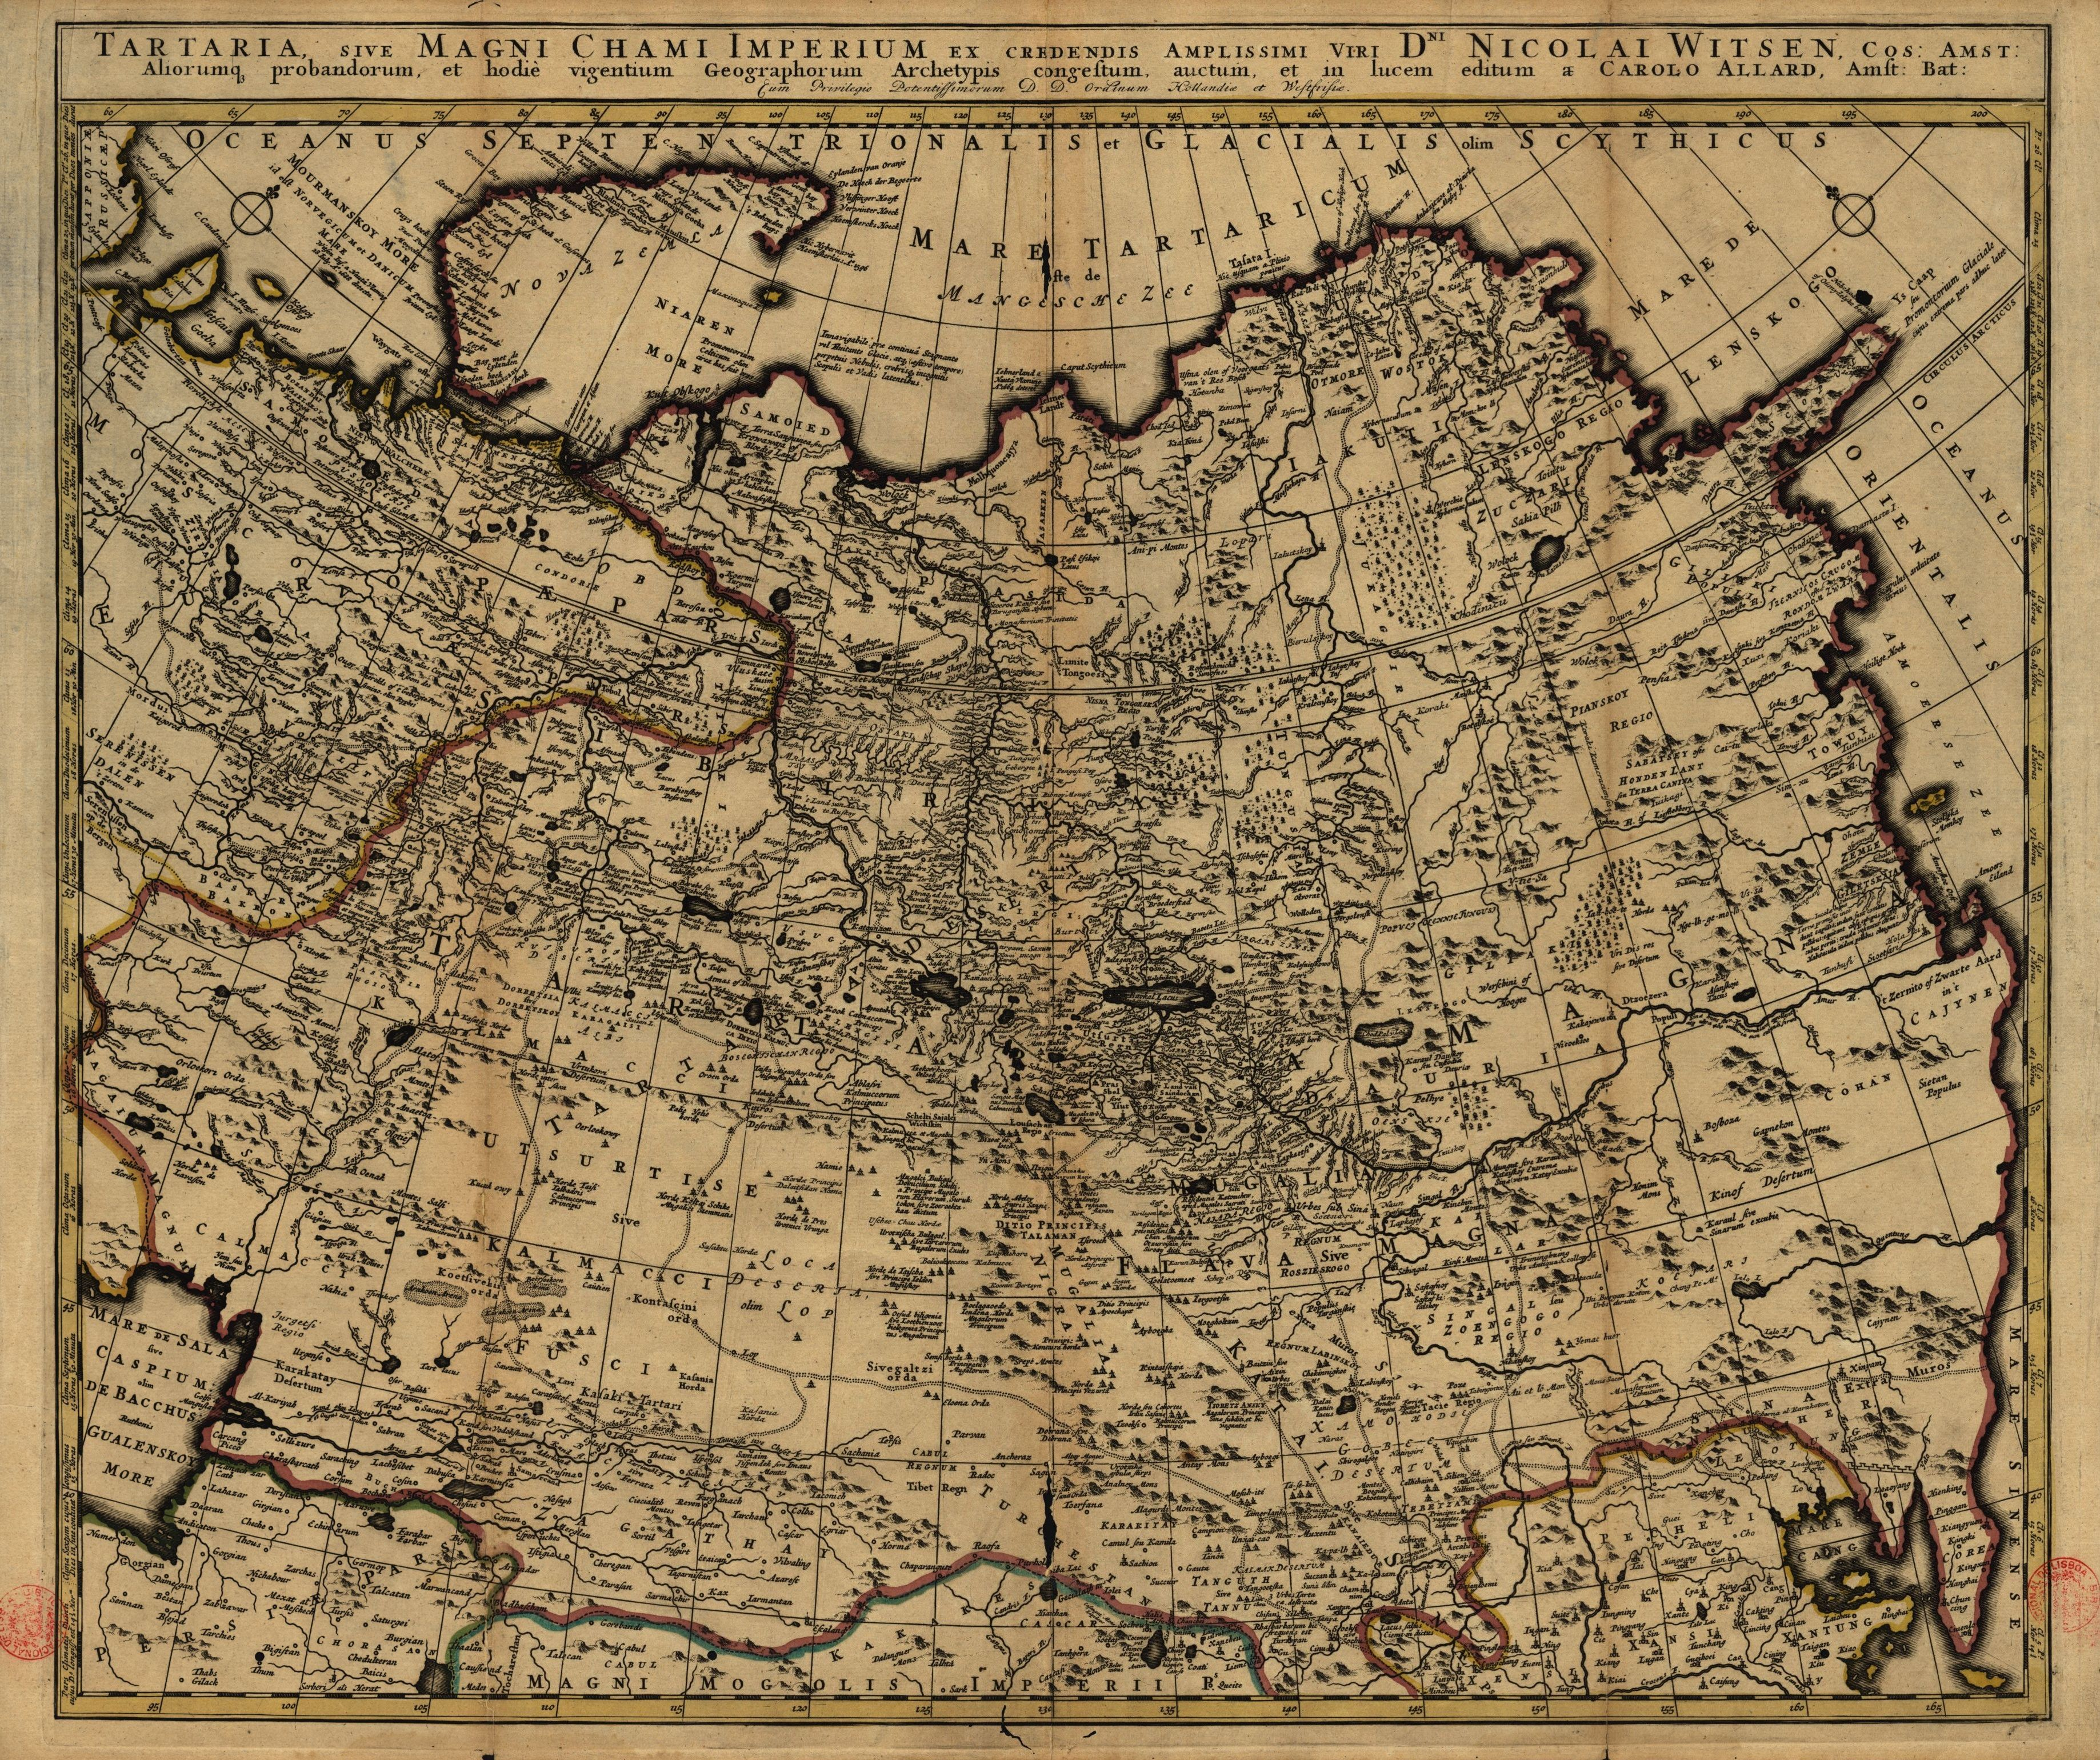 Ancient Middle East Map Mesopotamia%0A In      the Amsterdam burgomaster Nicolaes Witsen published this map of  Tartary  Land of the Tartars